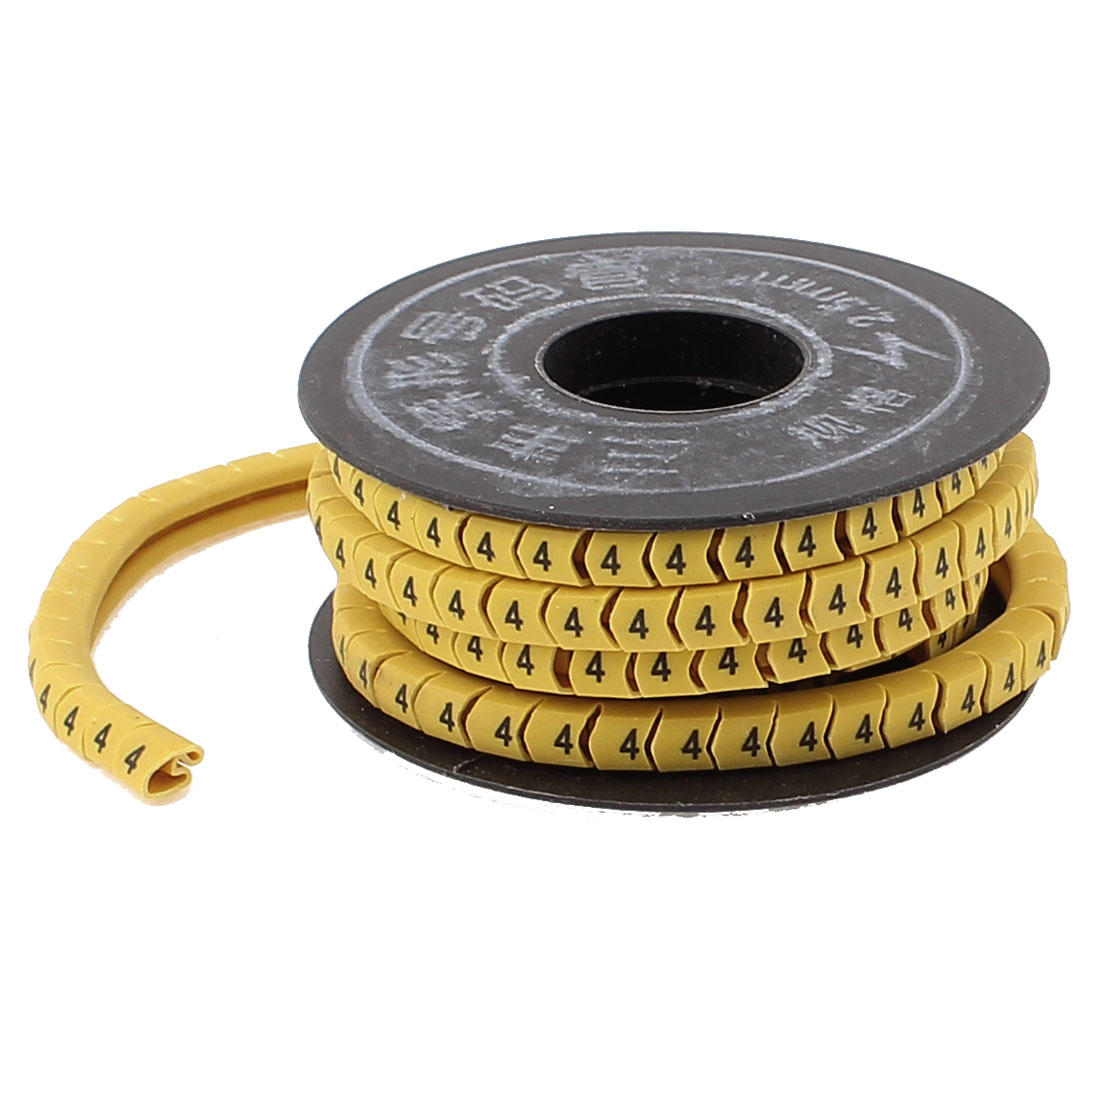 Flexible Yellow PVC Arabic Numerals 4 Printed Cable Marker Tag Label Reel Roll for 2.5mm2 Wire